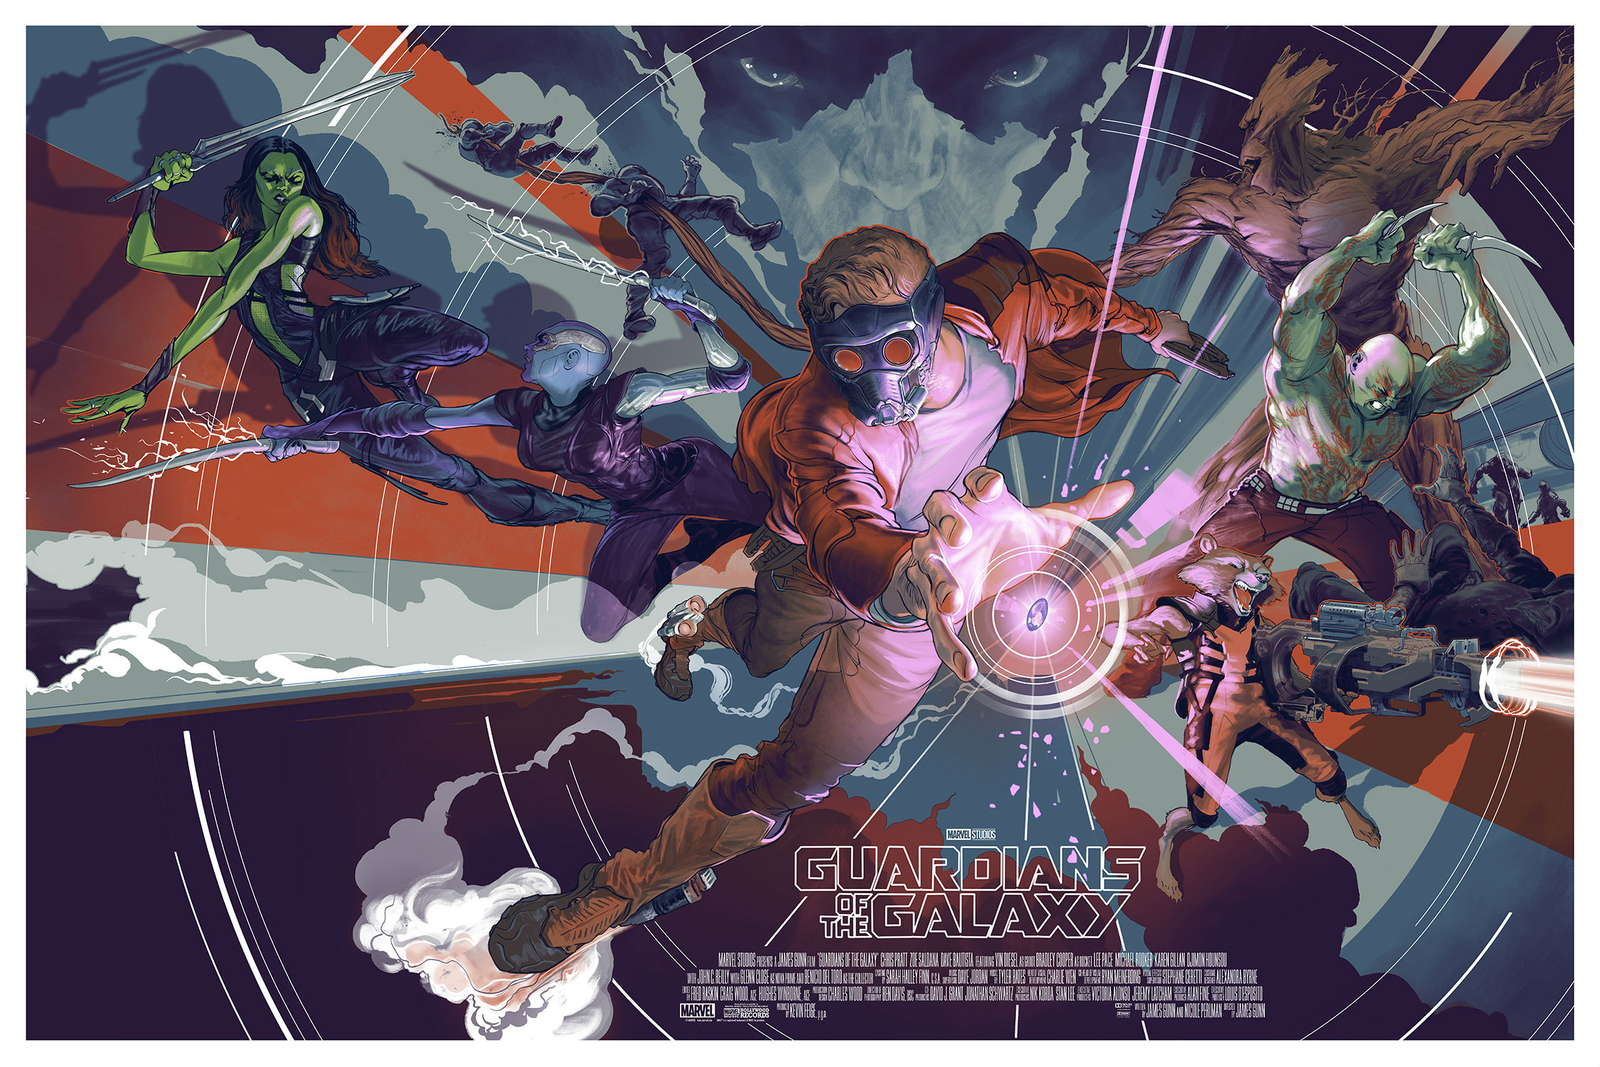 """Guardians of the Galaxy - Rich Kelly / 36""""x24"""" / Edition of 325 / $60"""